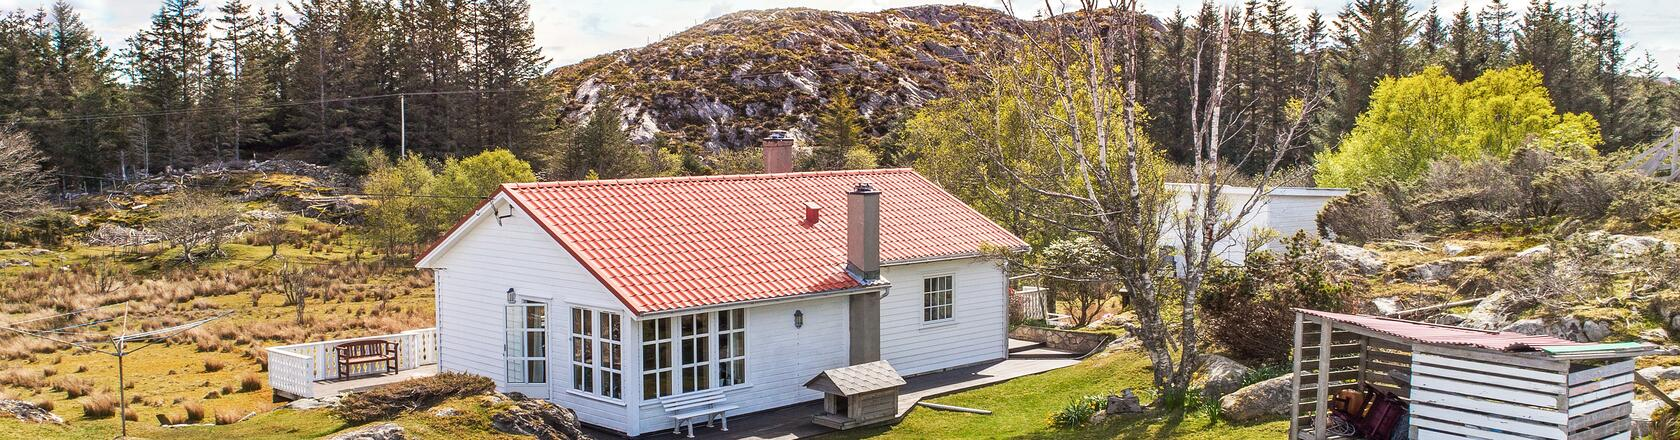 Rogaland in Norway — Rent a holiday home with DanCenter